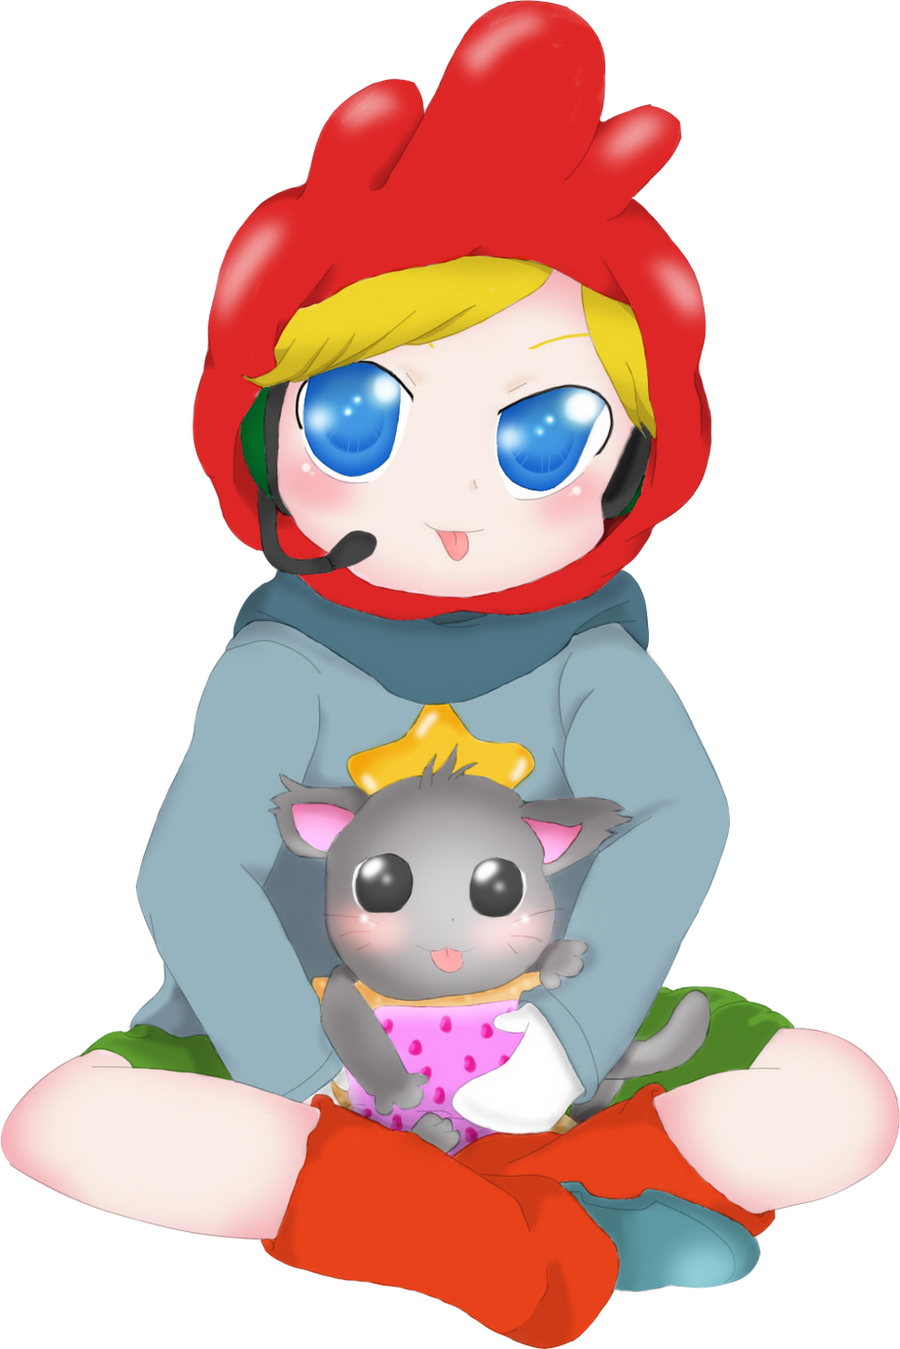 Maxwell Scribblenauts Drawing : Pewdiepie as maxwell scribblenauts unlimited by